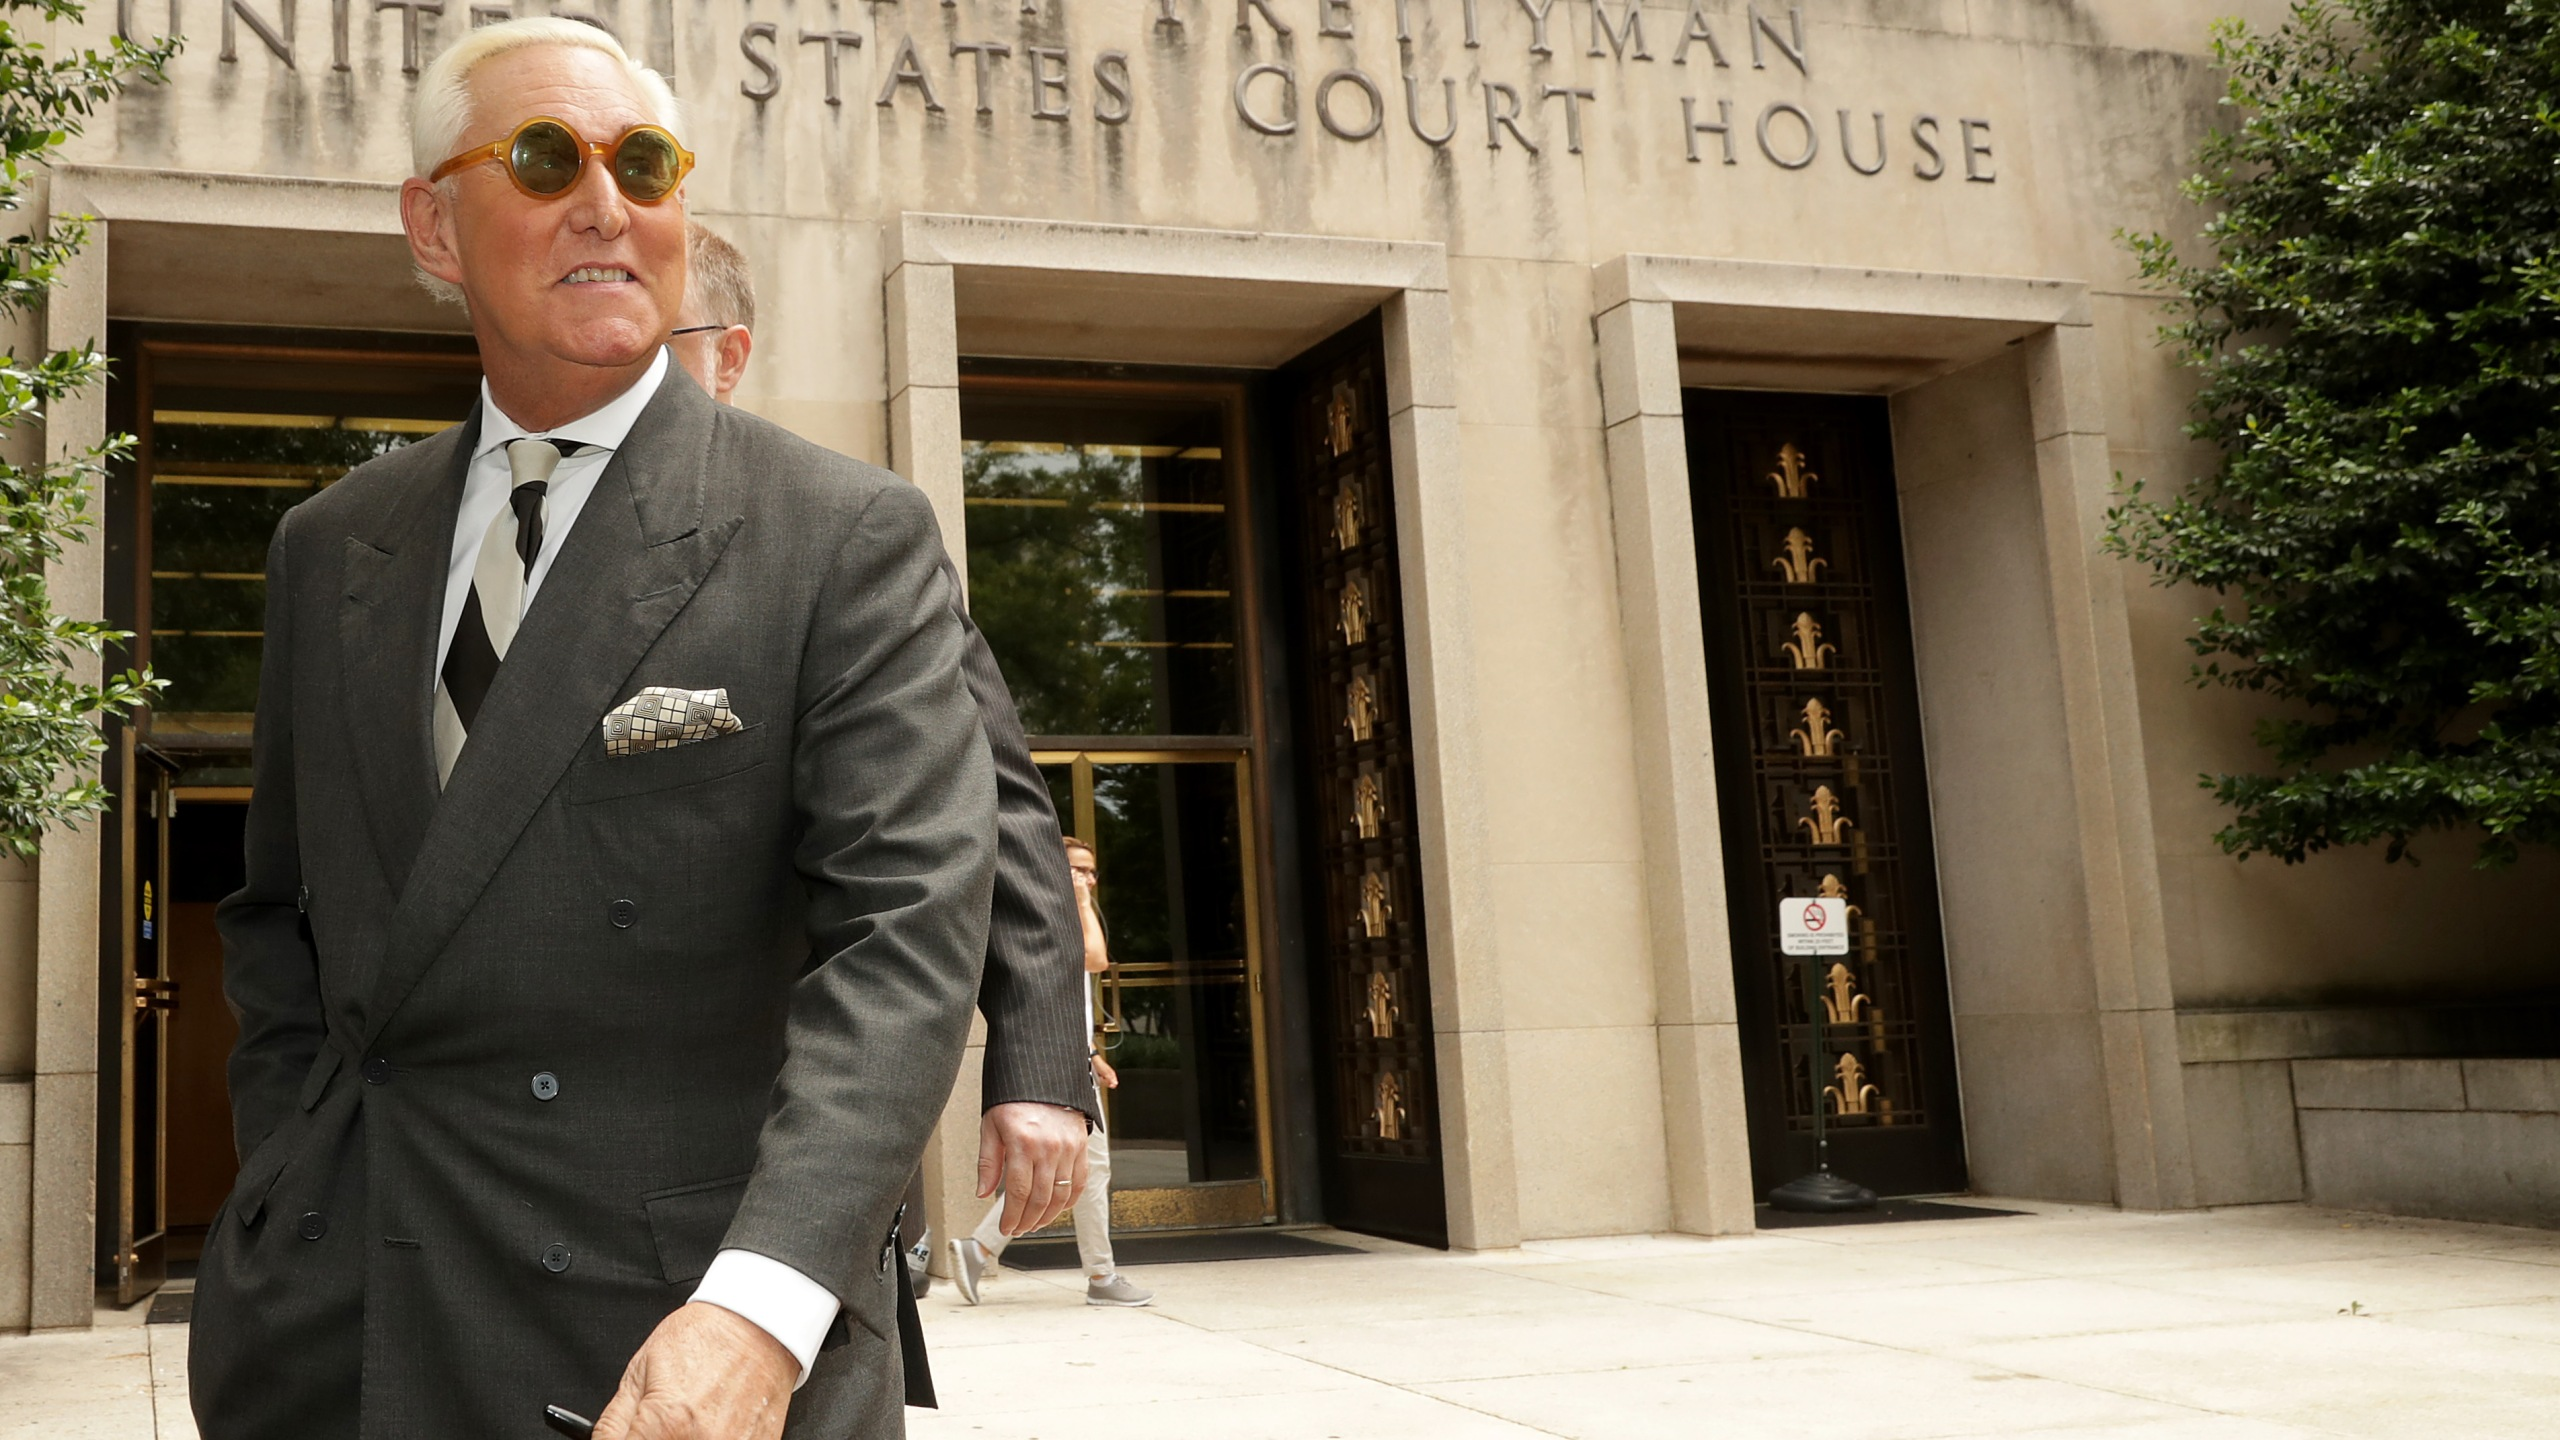 Roger Stone, former adviser to Donald Trump, leaves the E. Barrett Prettyman United States Court House in Washington, D.C. on May 30, 2019. (Credit: Chip Somodevilla/Getty Images)